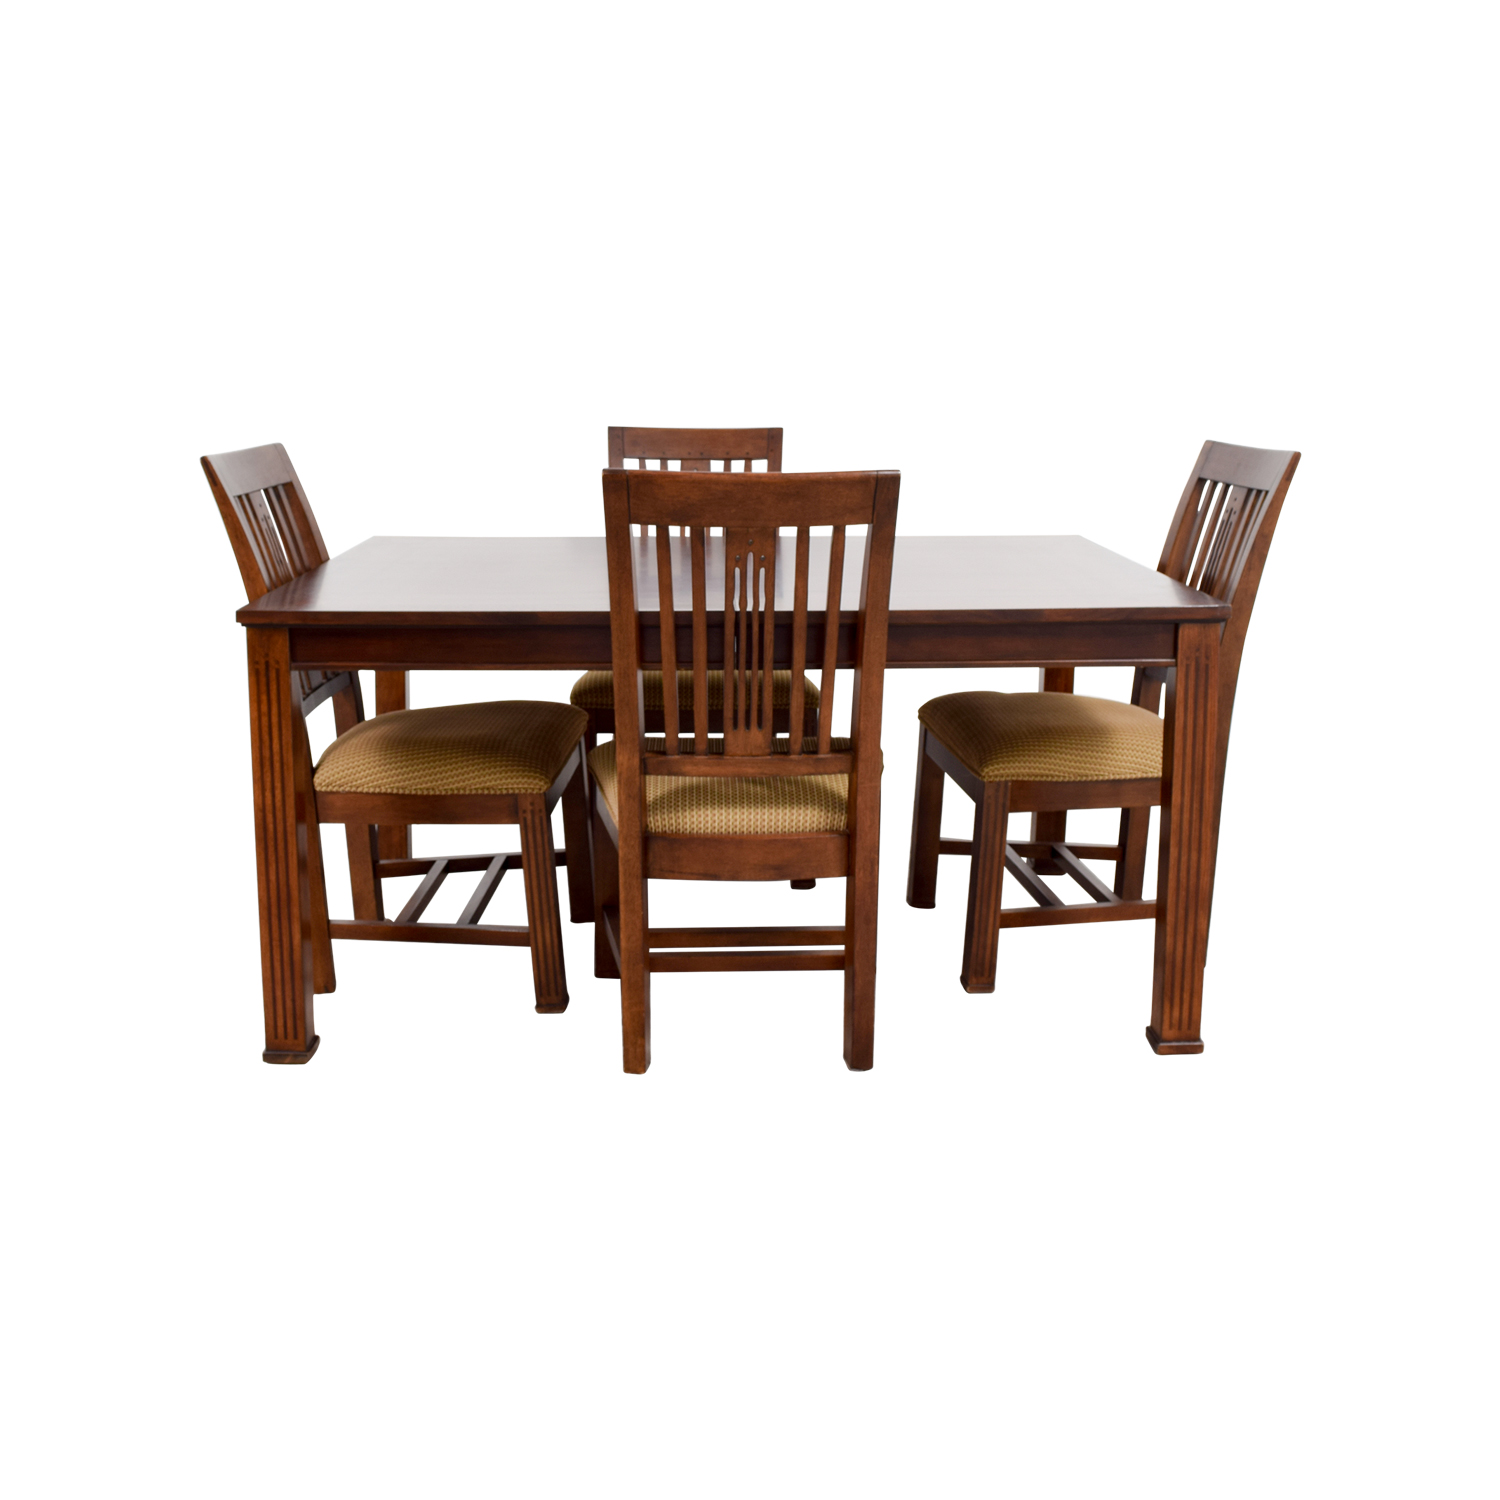 49% OFF Macy s Macy s Craft Mission Shaker Table and Chairs Tables